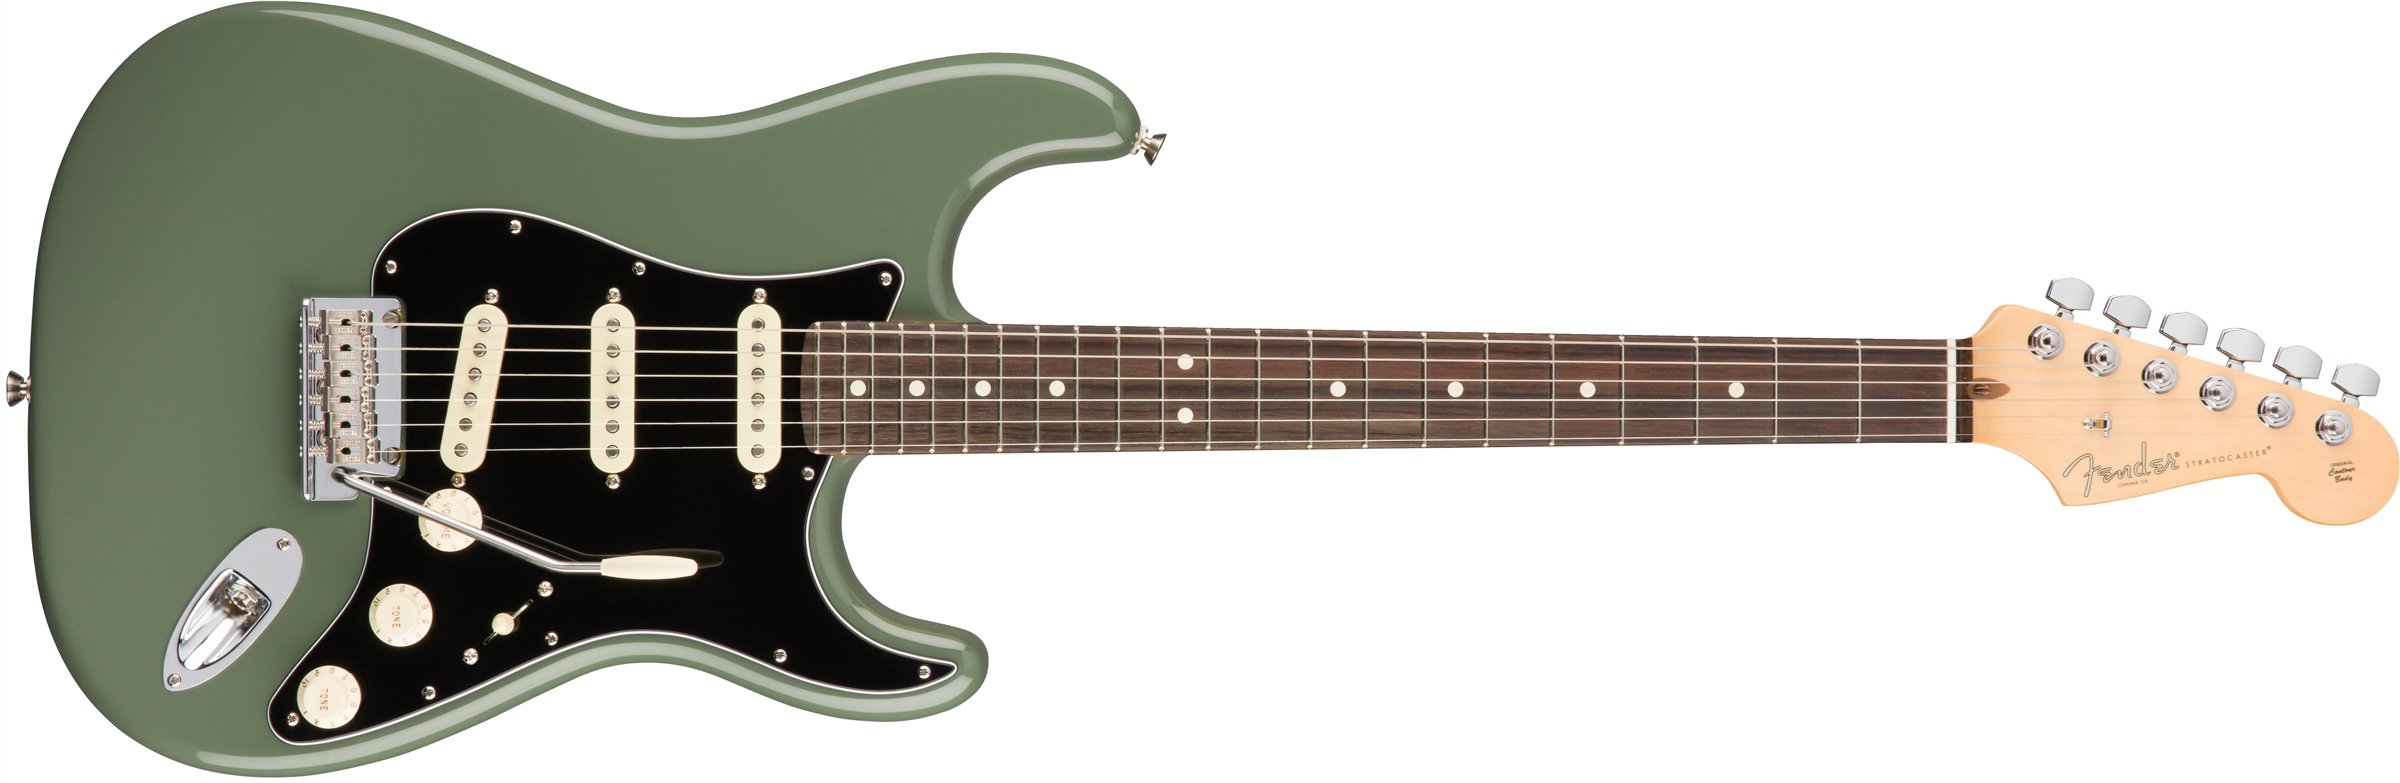 Fender American Professional Stratocaster RW Antique Olive